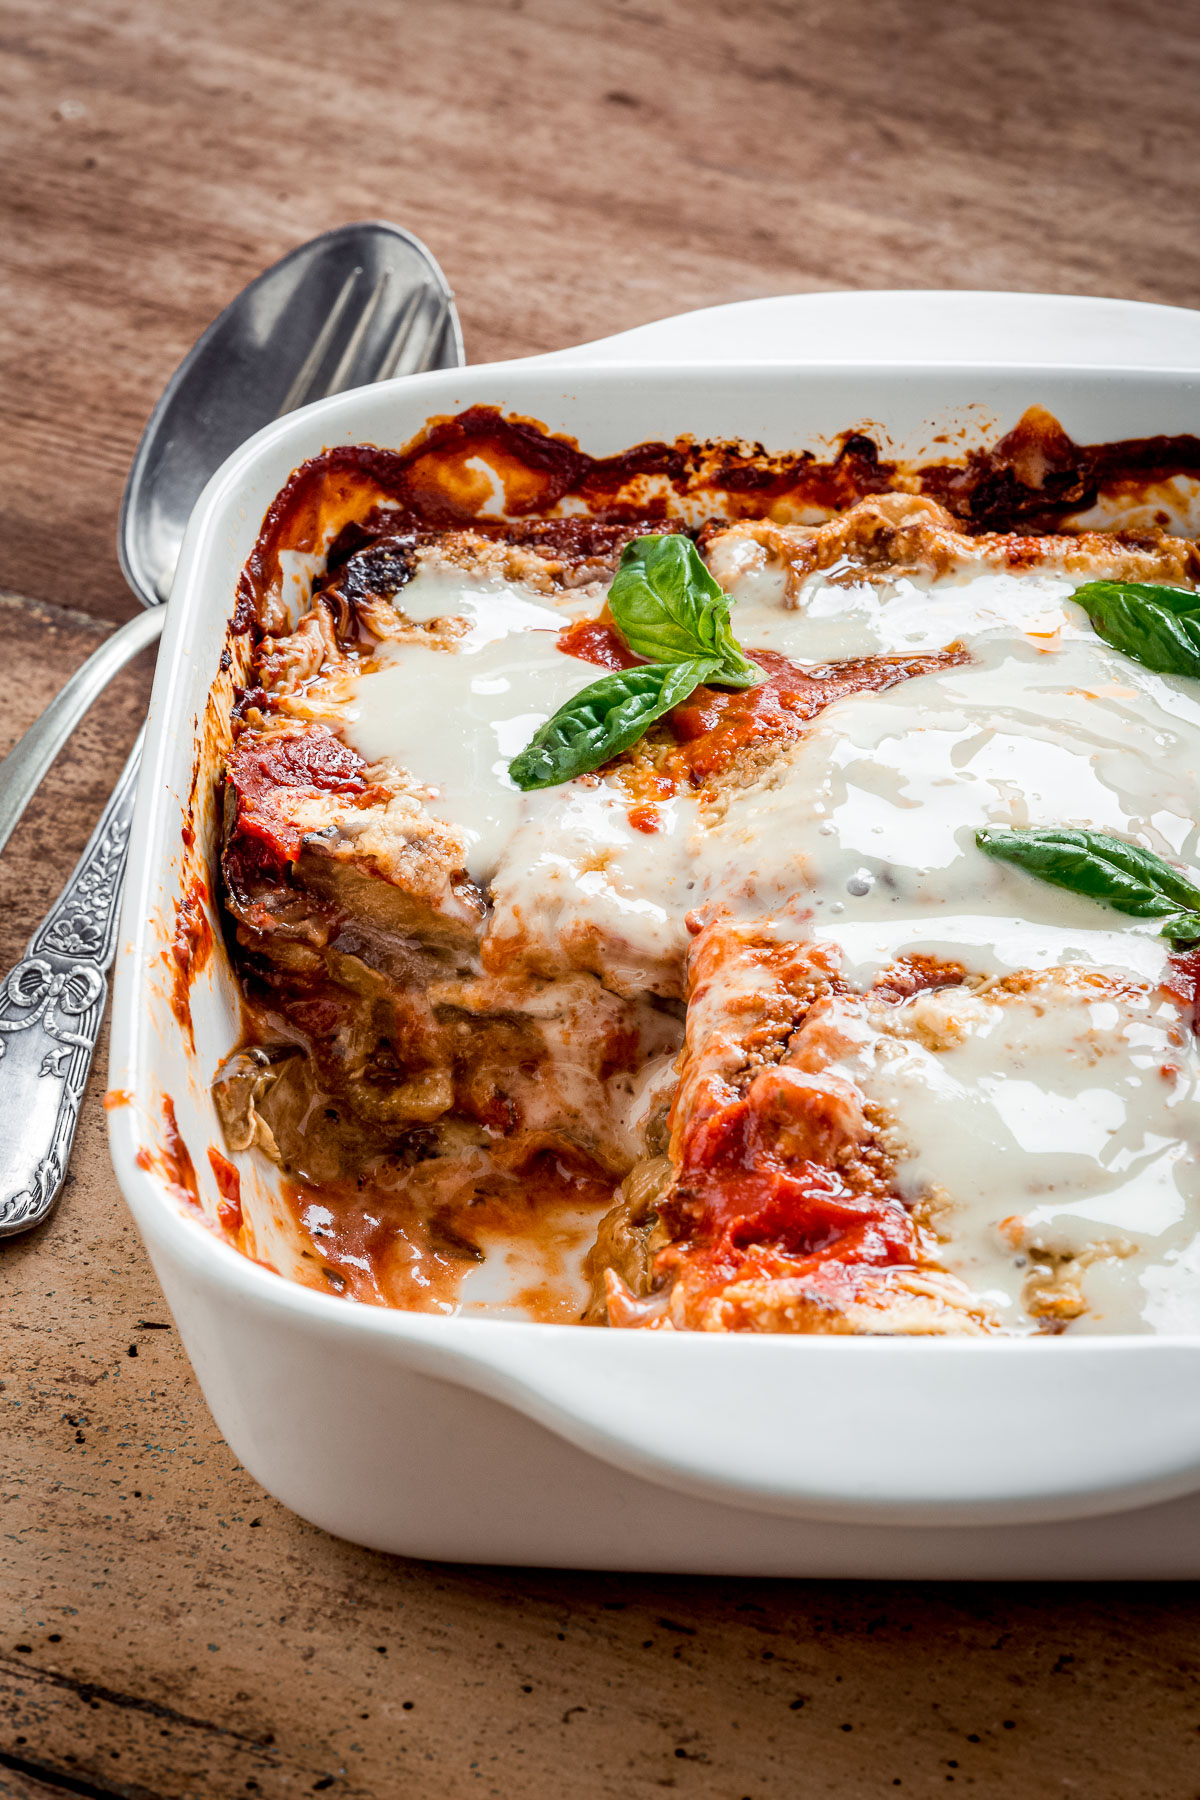 ricetta MELANZANE alla PARMIGIANA VEGAN LIGHT al FORNO con mozzarella vegan fatta in casa e parmigiano veg healthy Italian Vegan EGGPLANT PARMESAN recipe with homemade vegan mozzarella